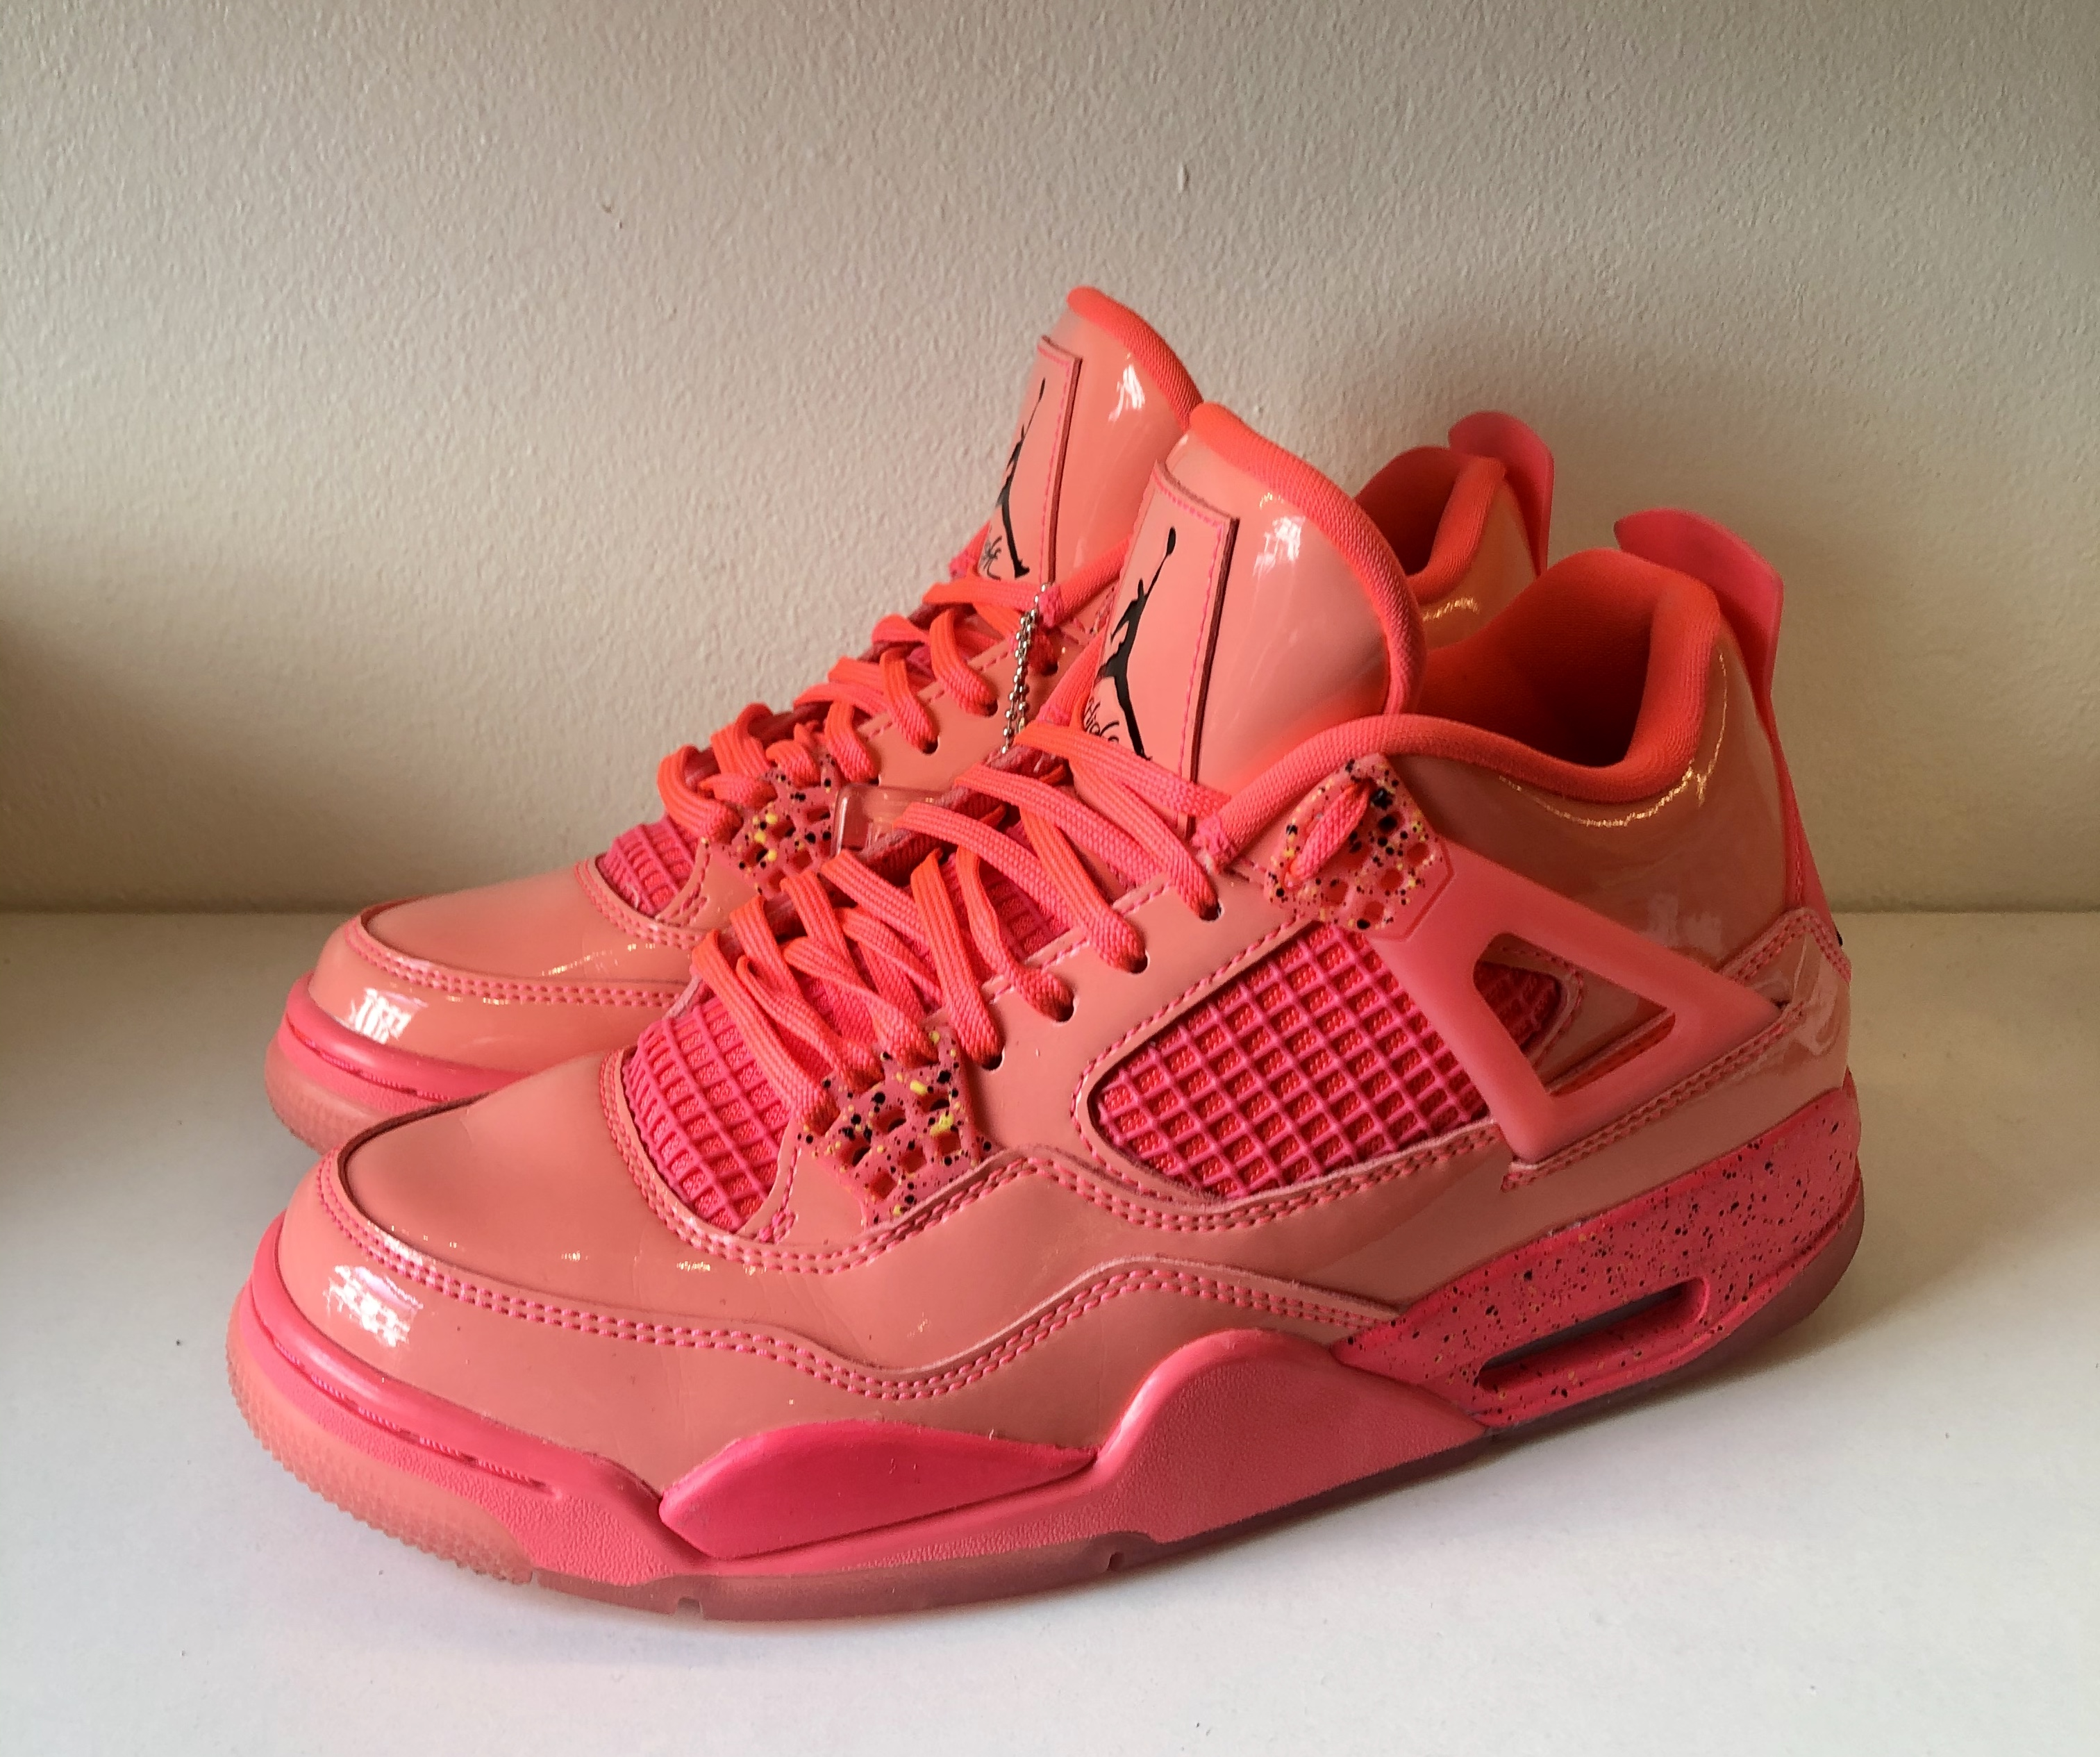 Jordan 4 Retro Hot Punch